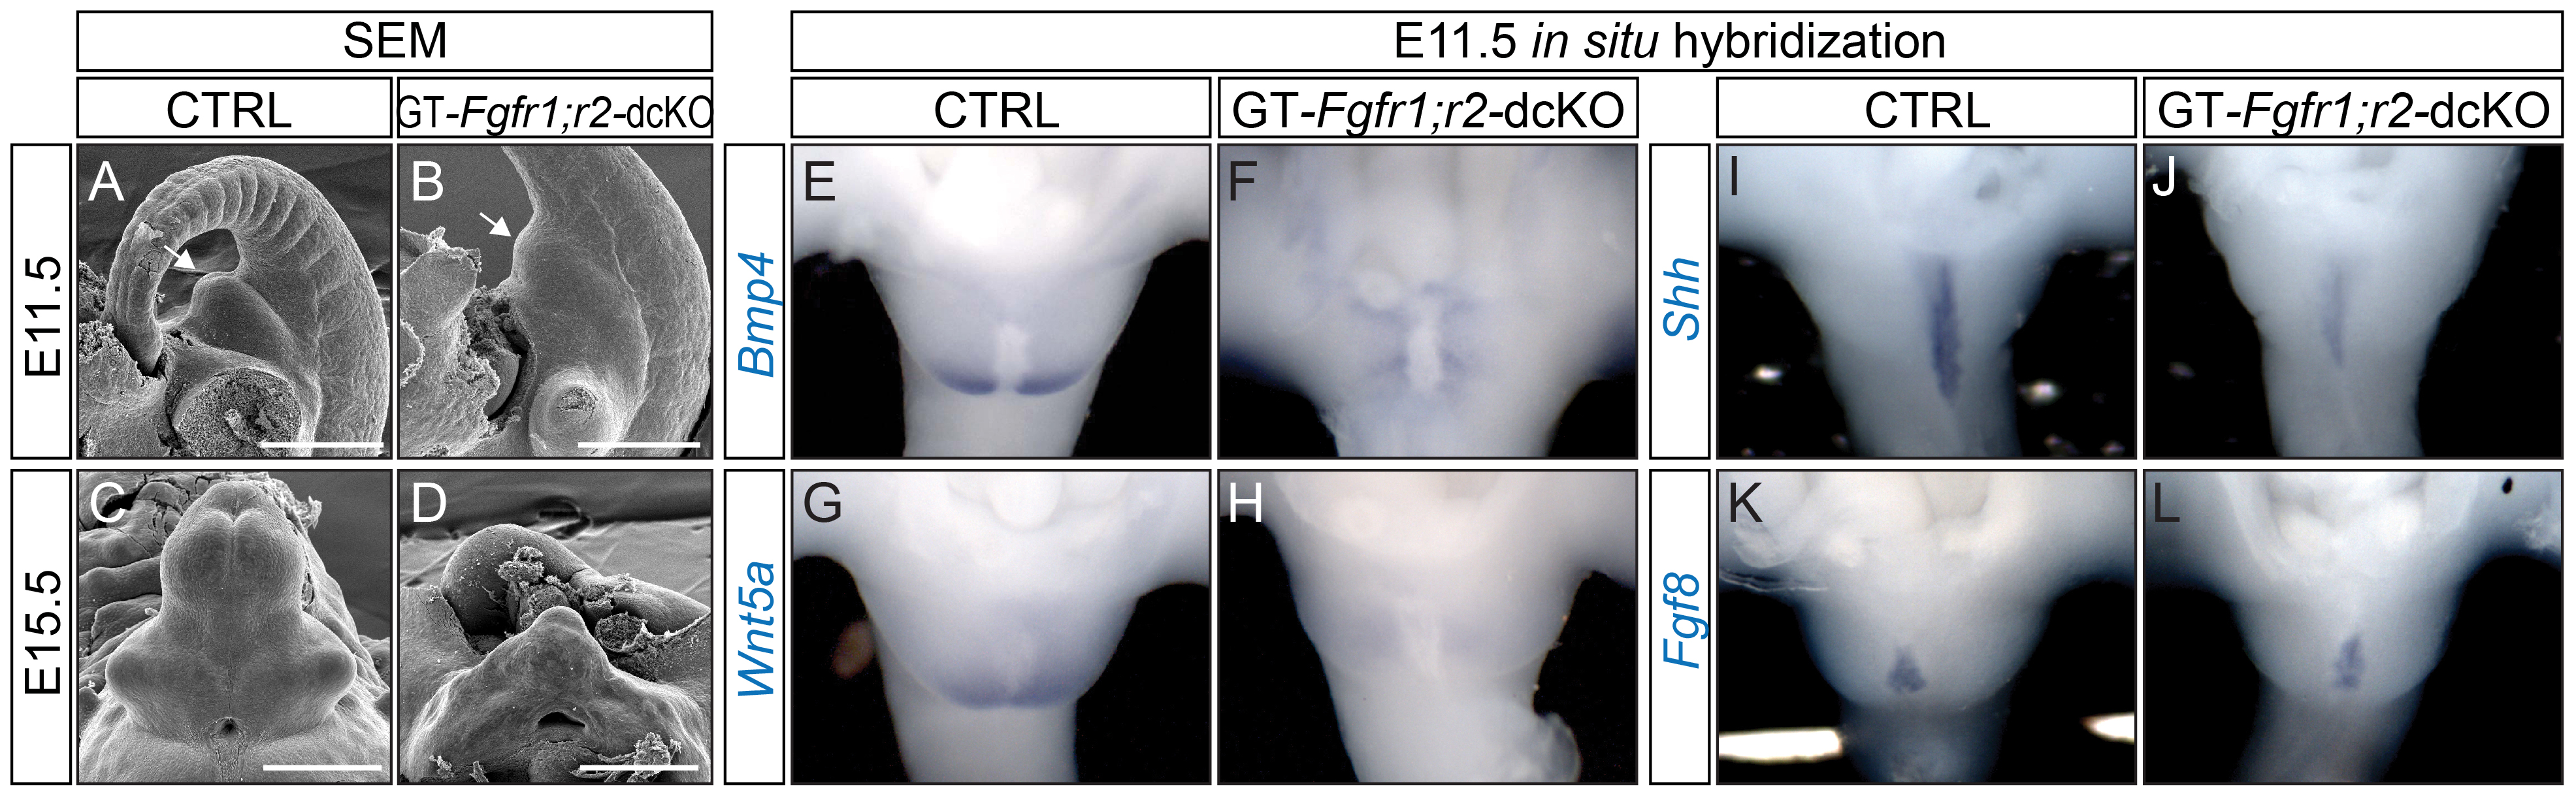 Defective GT development in GT-<i>Fgfr1</i>;<i>r2</i>-dcKO embryos.